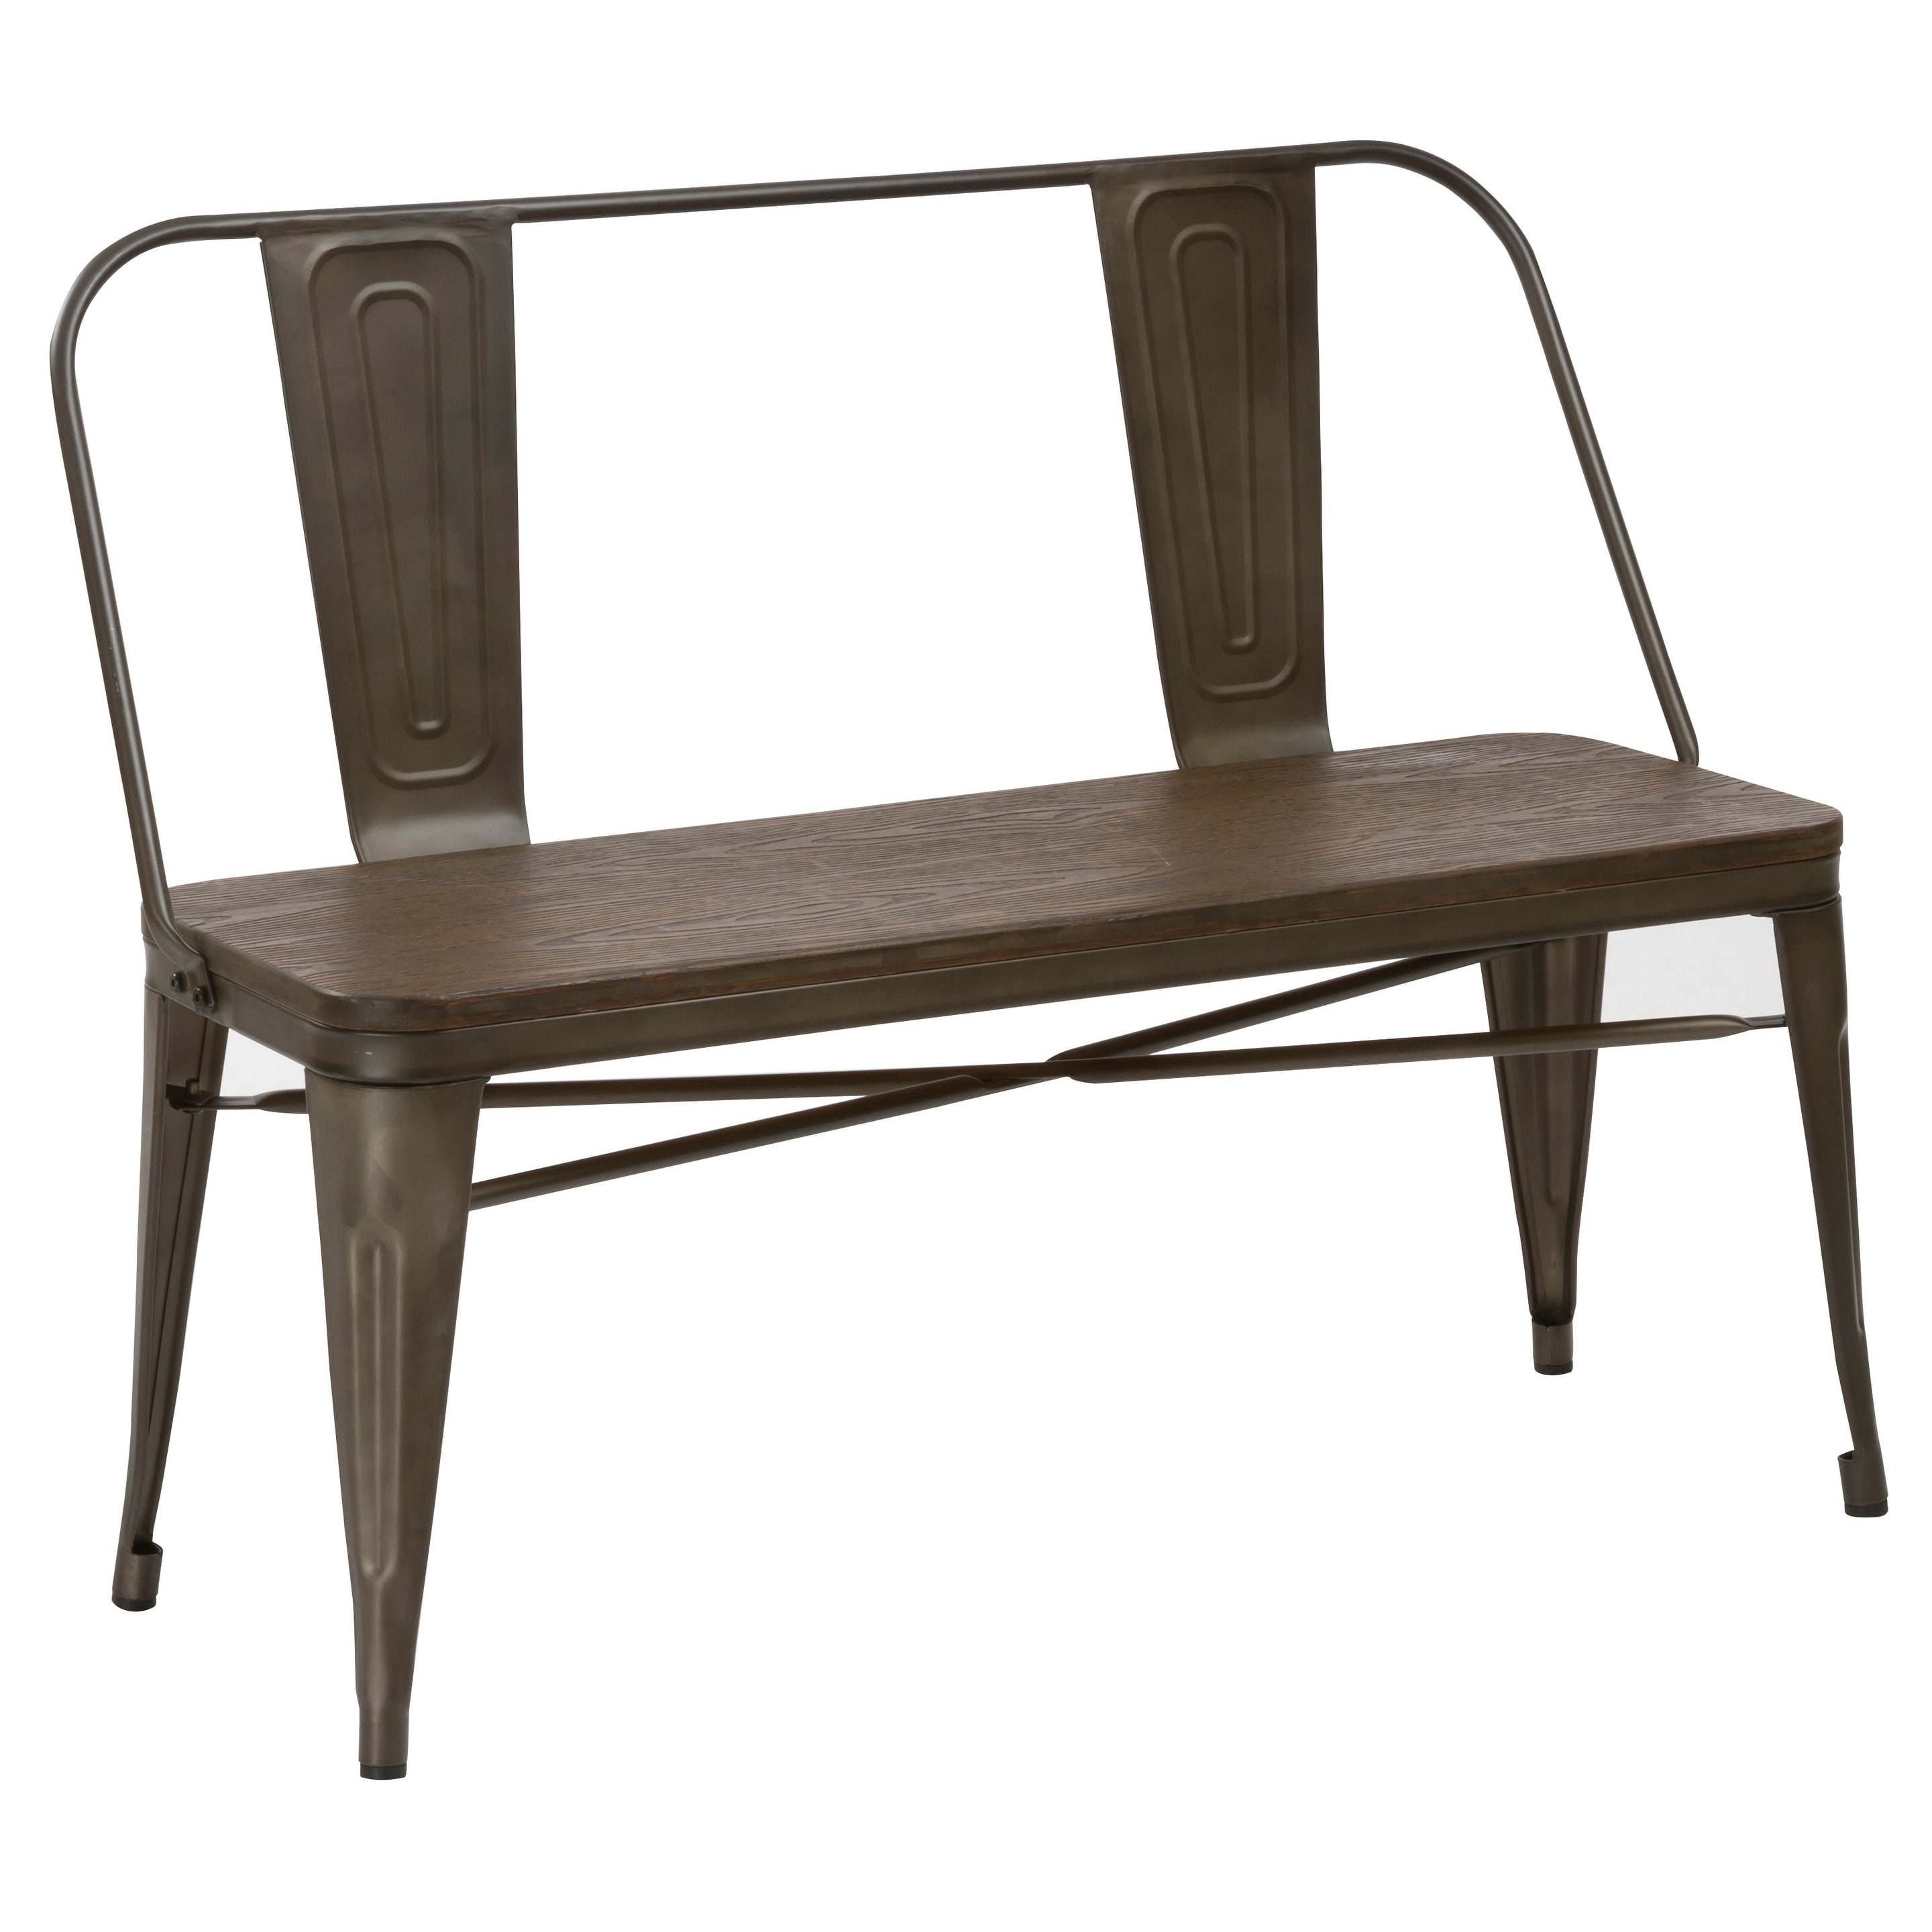 Shop Industrial Antique Rustic Wood Metal Dining Bench Full Back   Free  Shipping Today   Overstock.com   21587206